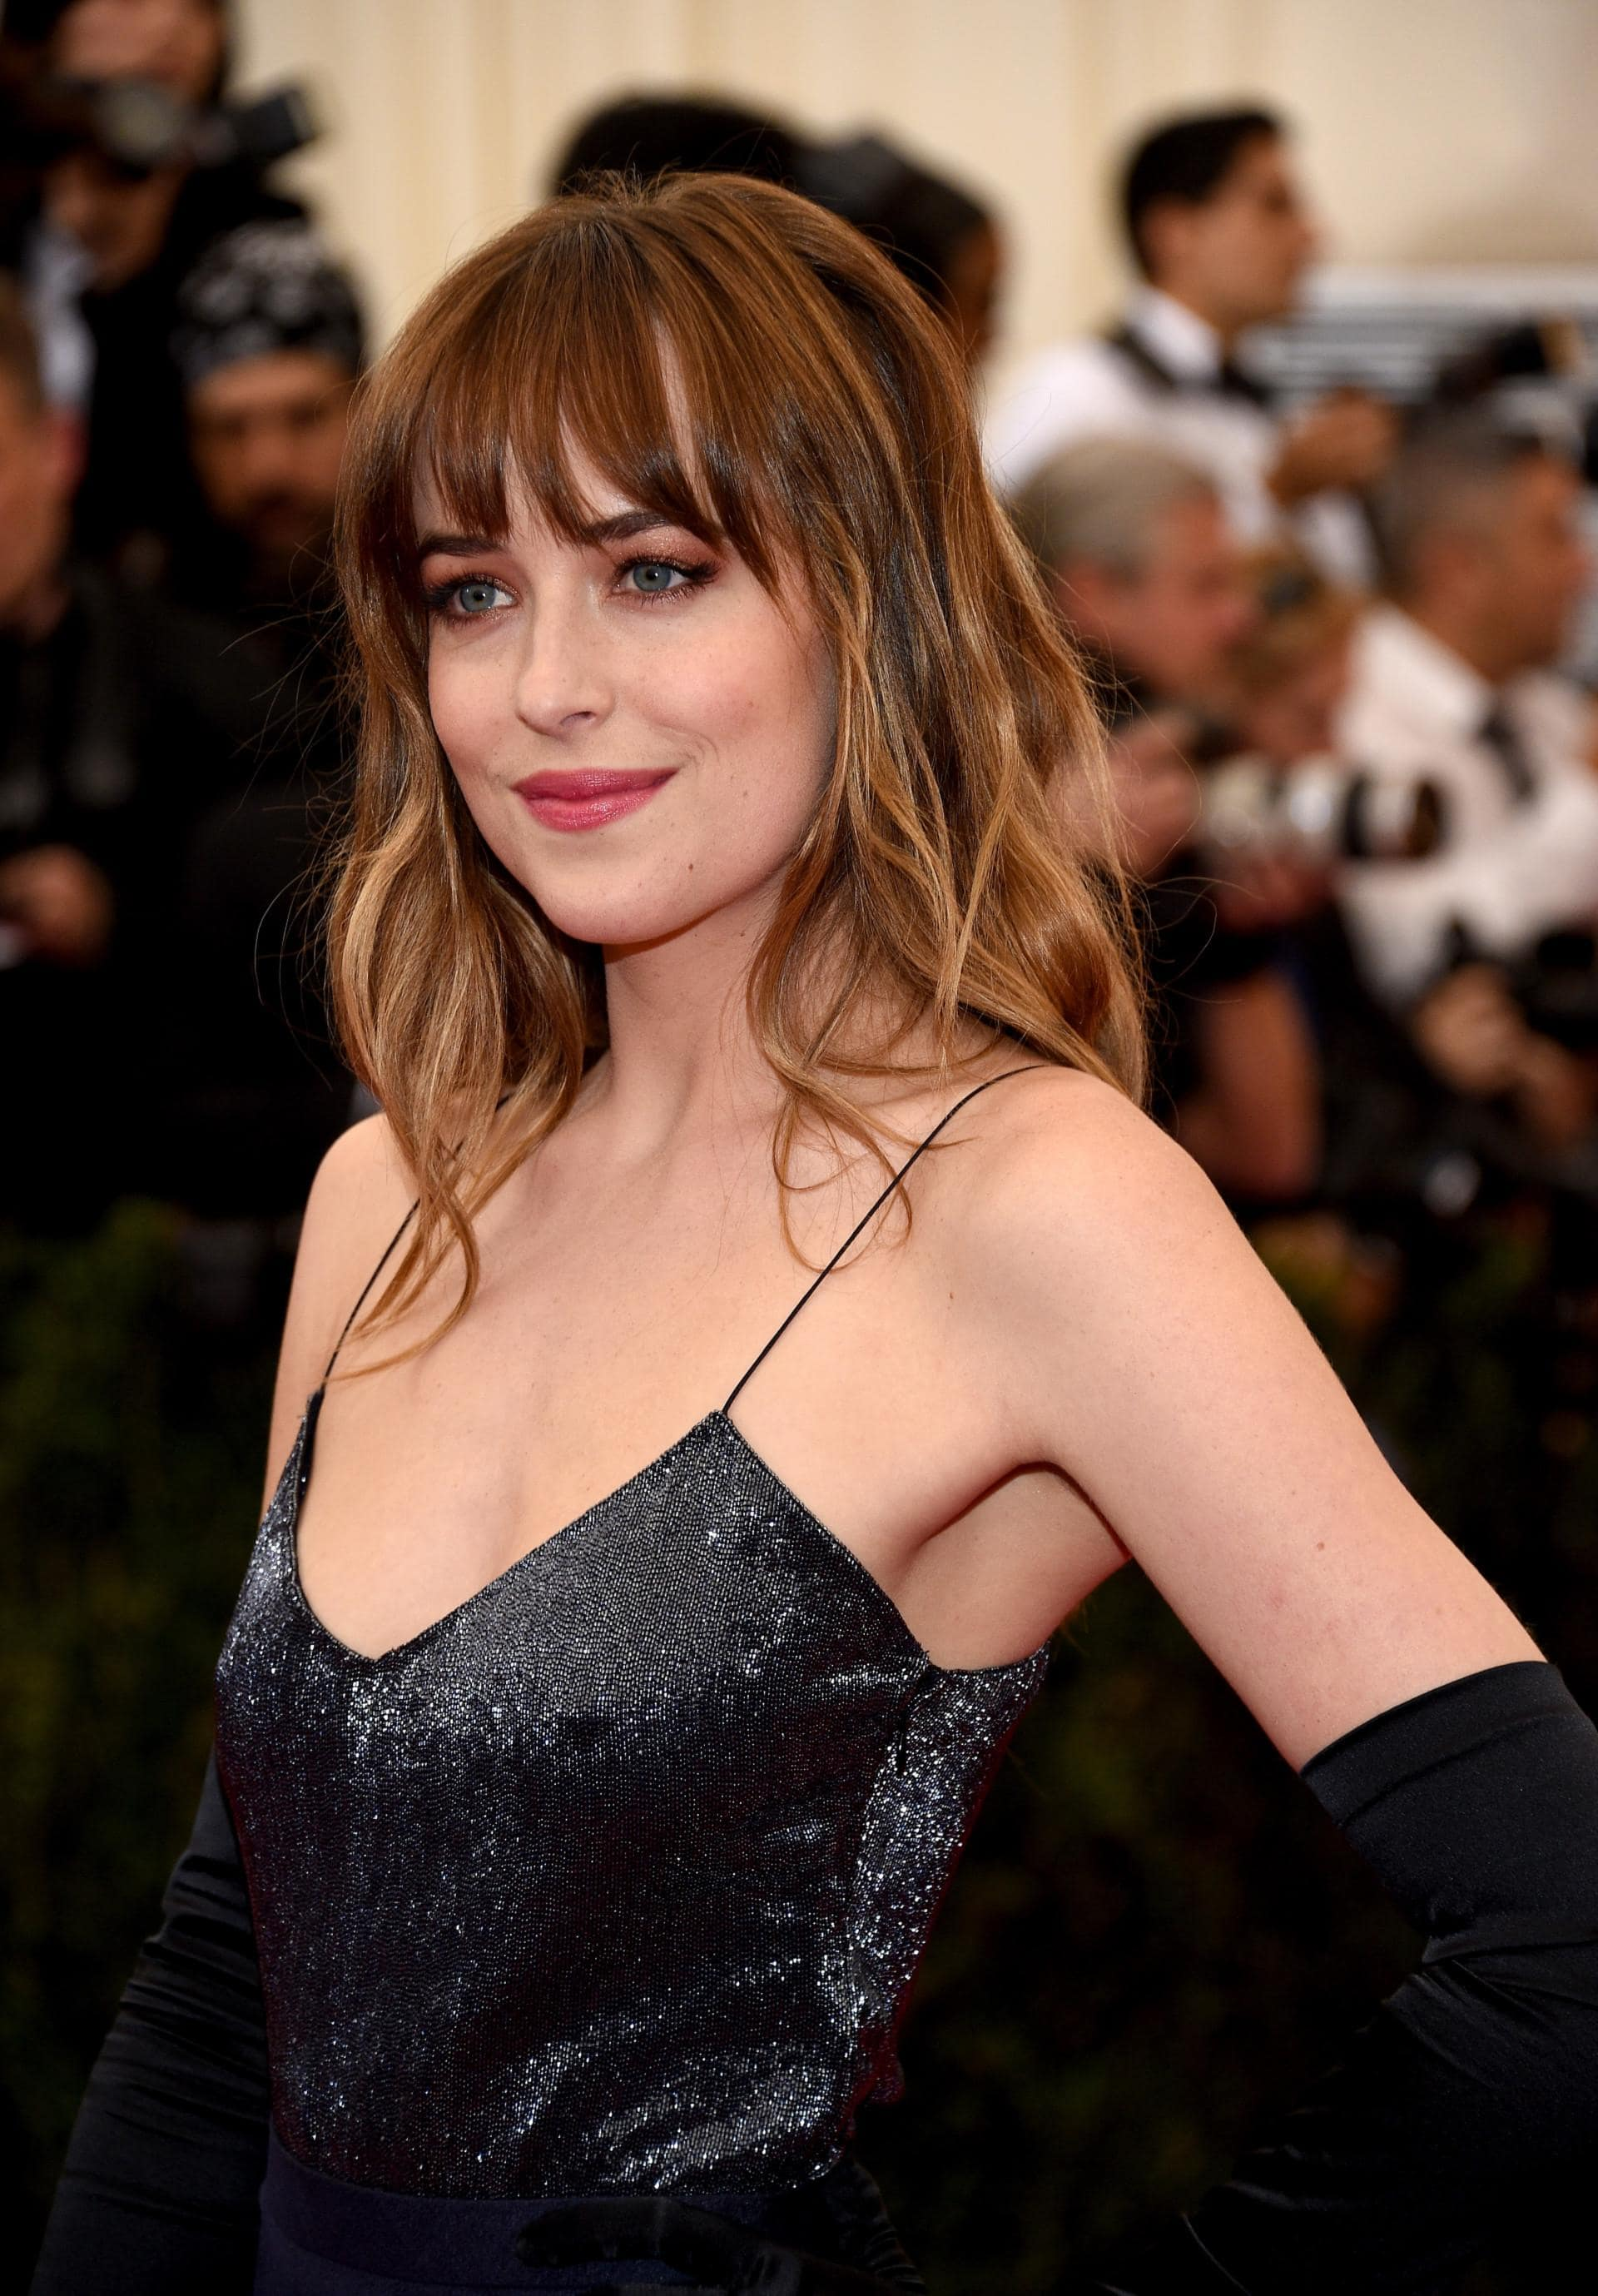 Dakota Johnson in a black dress - Dakota Johnson Net Worth, Movies, Family, Boyfriend, Pictures and Wallpapers